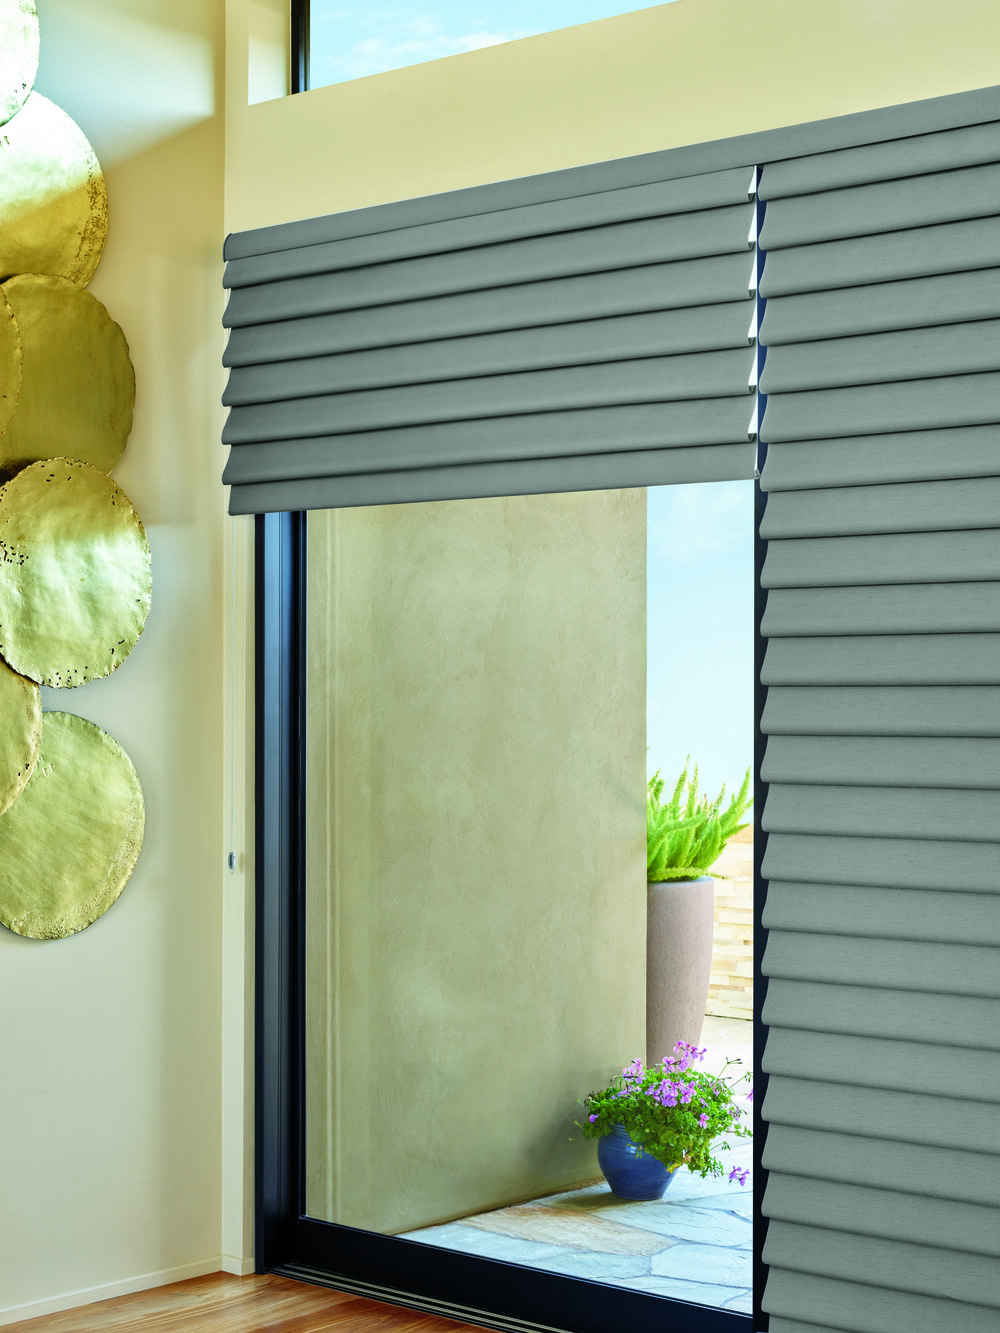 Modern roman shades uniform contoured or flat fabric folds with no exposed rear cords